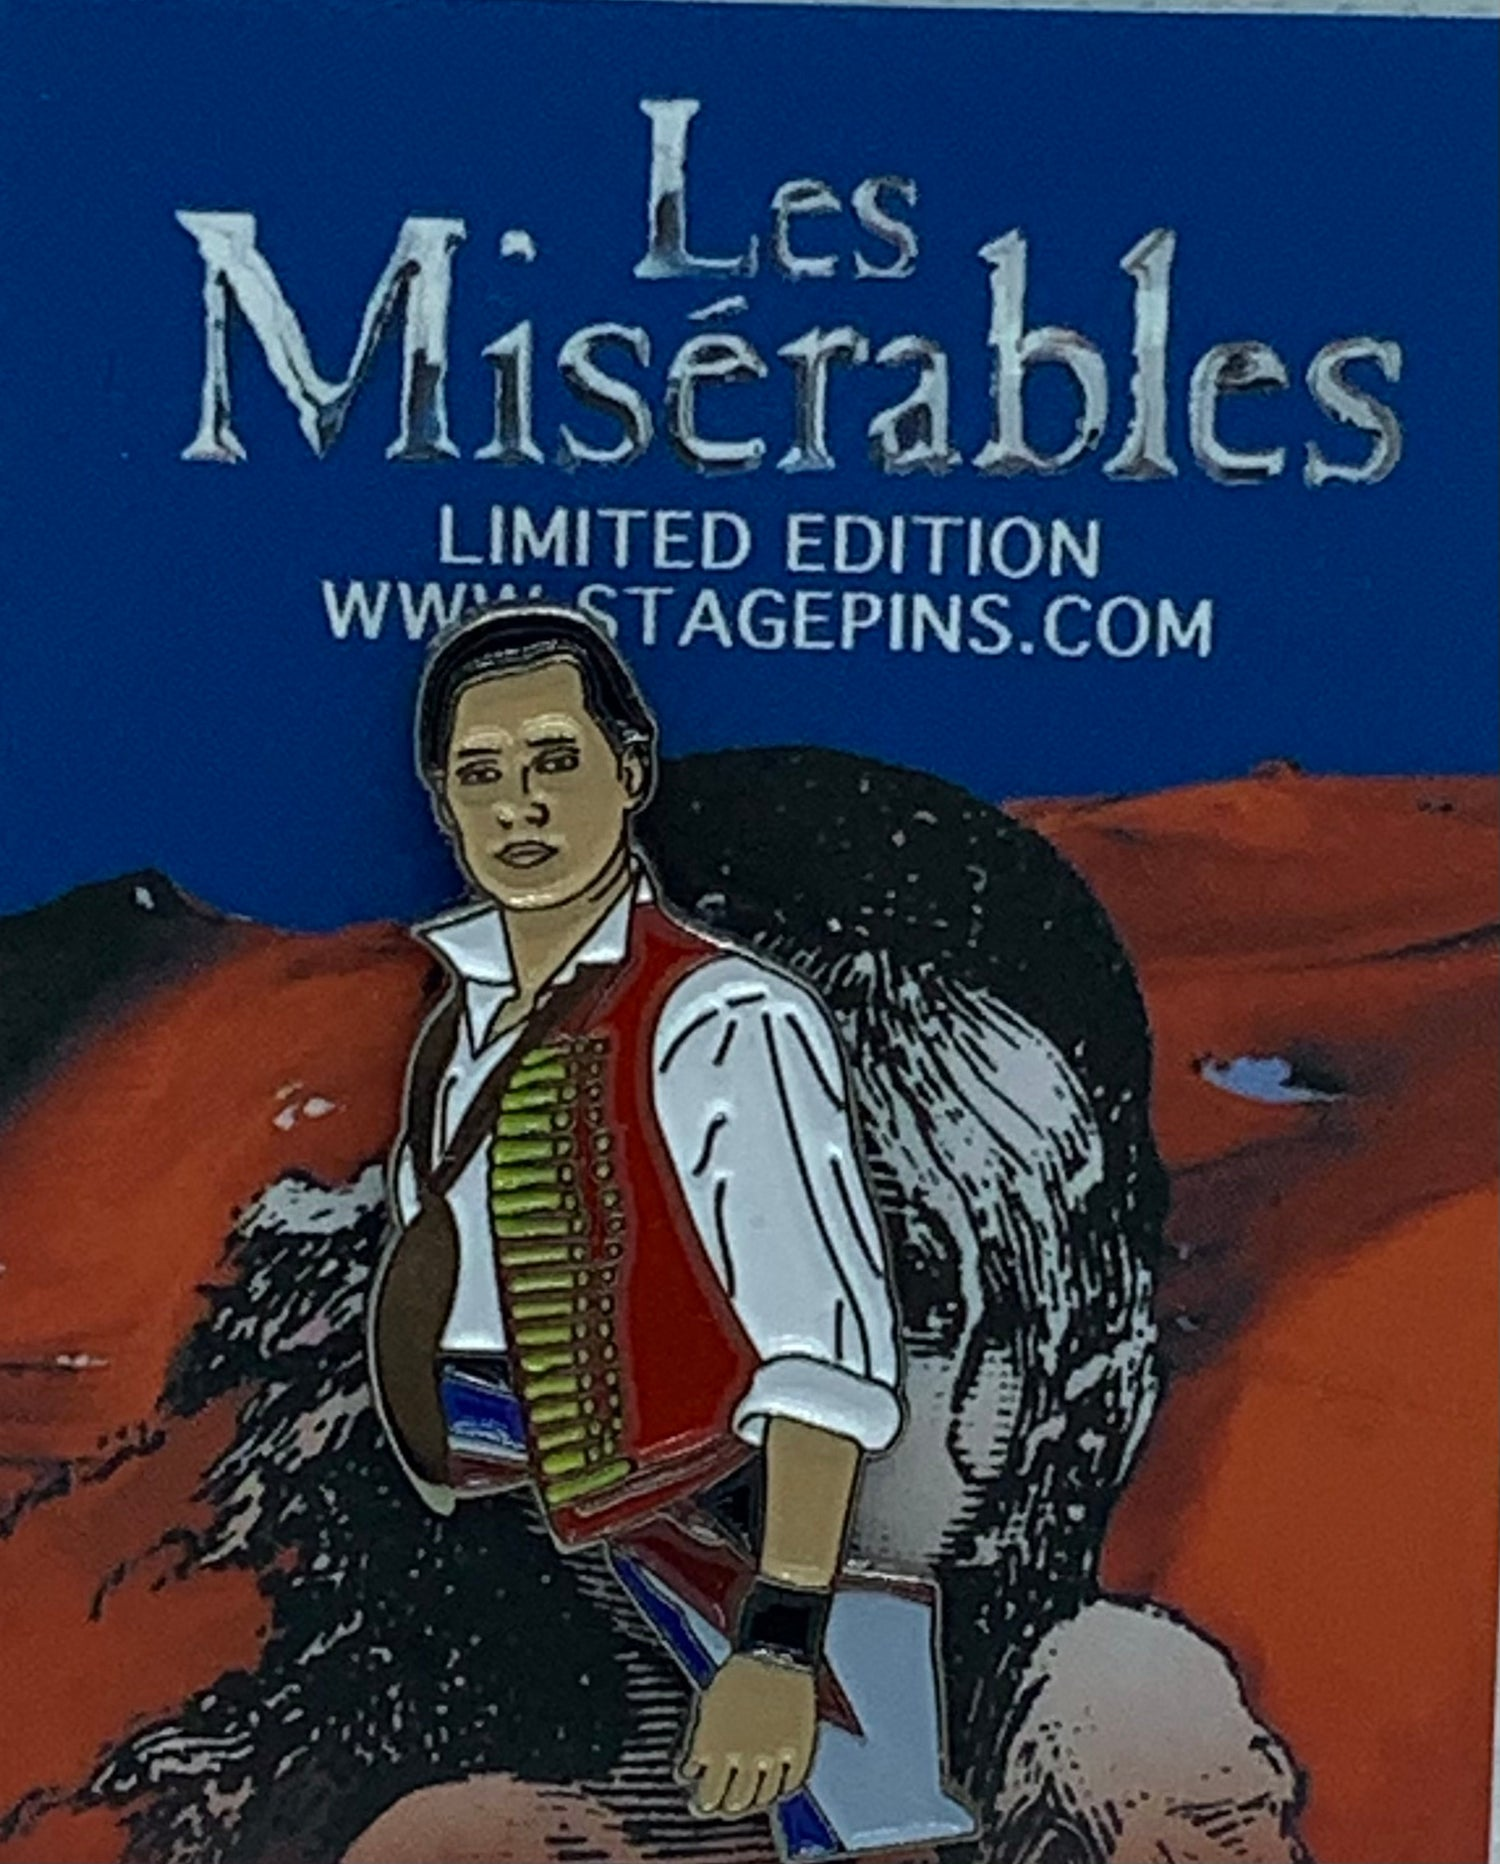 Enjolras From Les Misérables The Musical